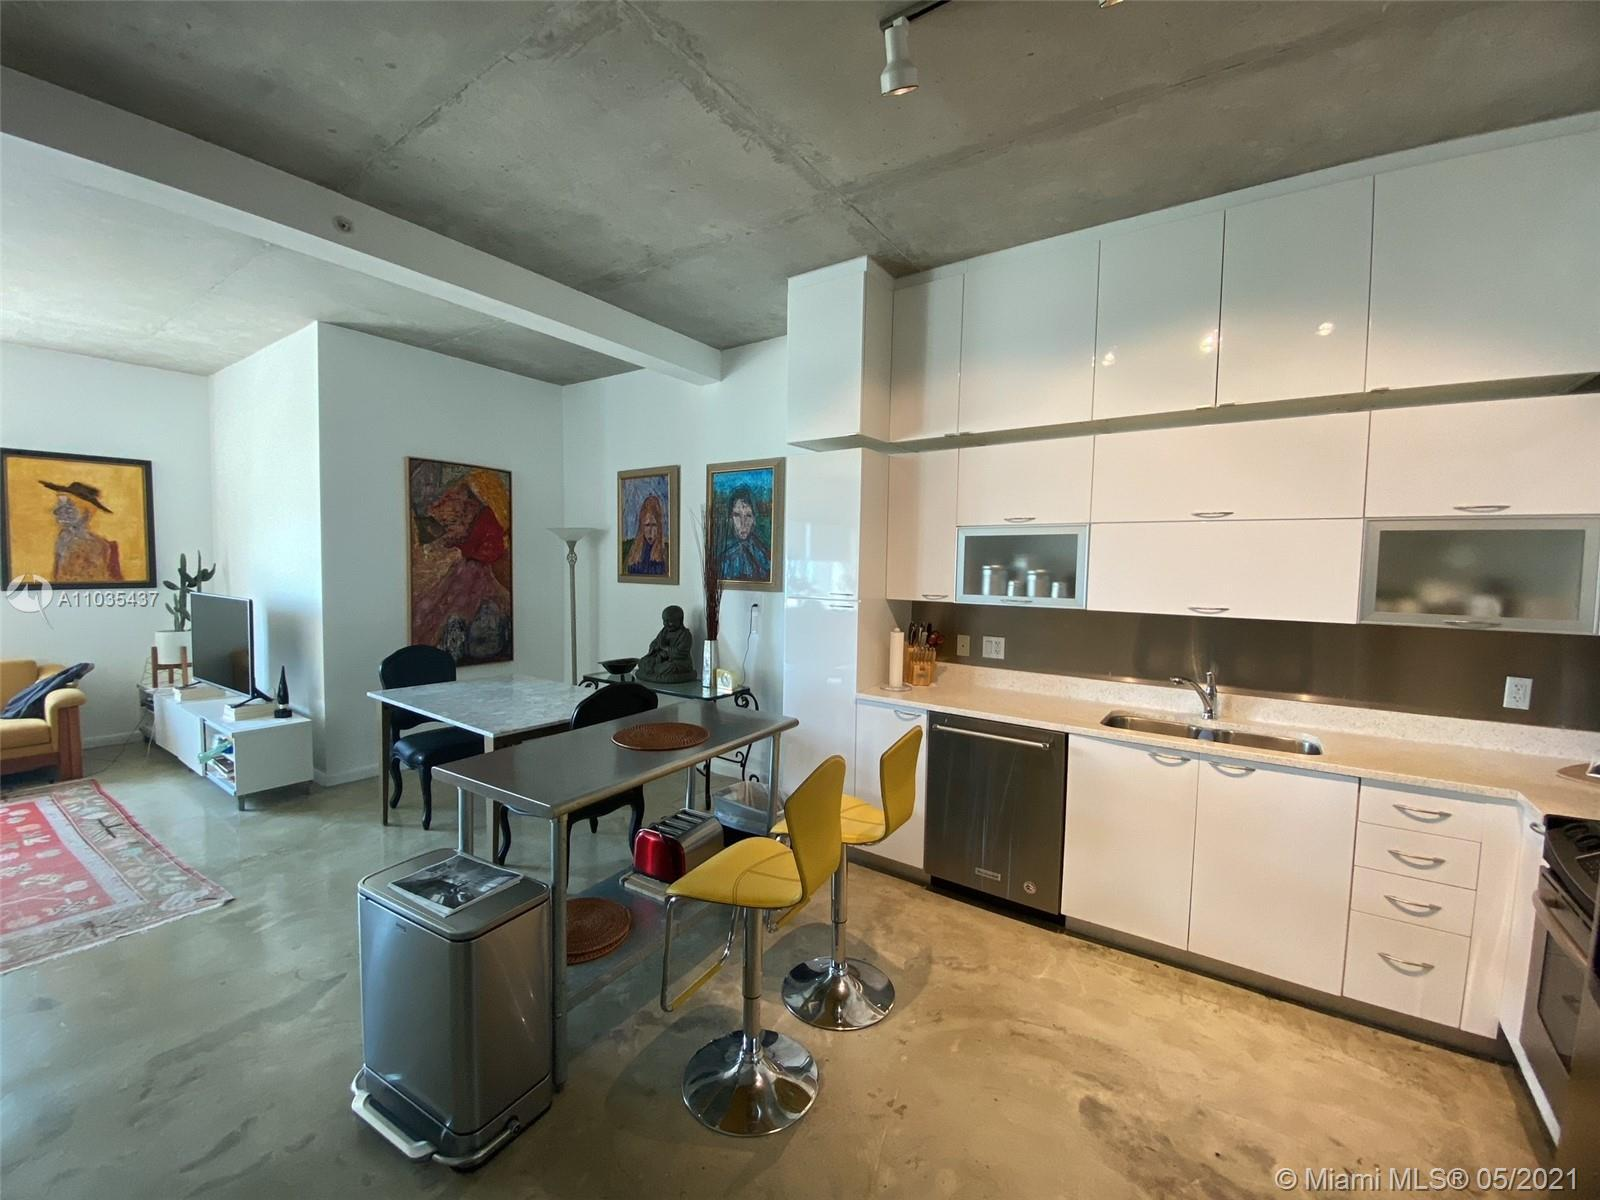 Broker 305 is pleased to offer one of the largest 1 Bedroom lines at The Loft I Boutique Condo Building situated in the core of Downtown Miami. Within walking distance to great Miami landmarks to mention a few such as Bayside, Miami Marina, Triple AAA Arena & Bayfront park. High Loft Style Ceilings with easterly Bay Views. New kitchen cabinets and along with extra cabinets above for that much needed storage. Washer/Dryer inside. Quiet High Efficient Central AC. High Speed Fiber Optic Internet , Covered Parking space and use of pool, sauna, gym and pool table room is all included in the maintenance. Live the Downtown Urban life at a reasonable price before these condo's go even higher. 30 Day Minimum rental makes this space ideal for short term rental income as well.